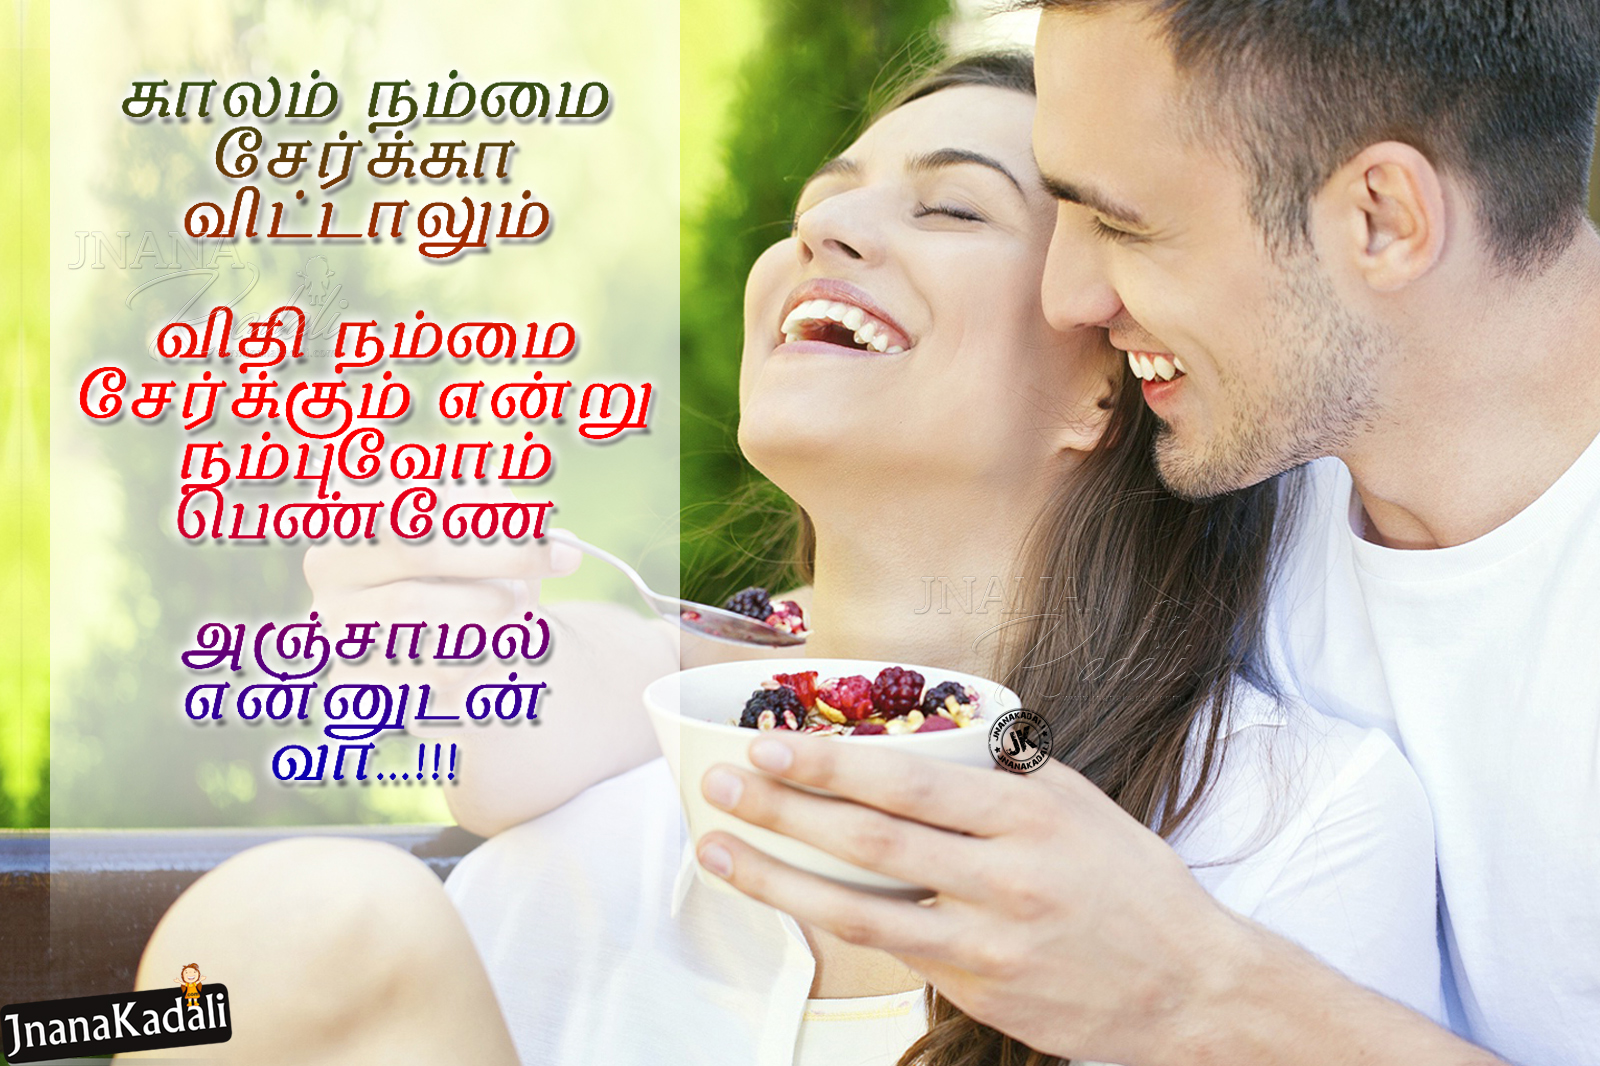 Heart Touching Tamil Love Quotes Kadhal Kavithaigal - Attractive Men Eating Fruits - HD Wallpaper